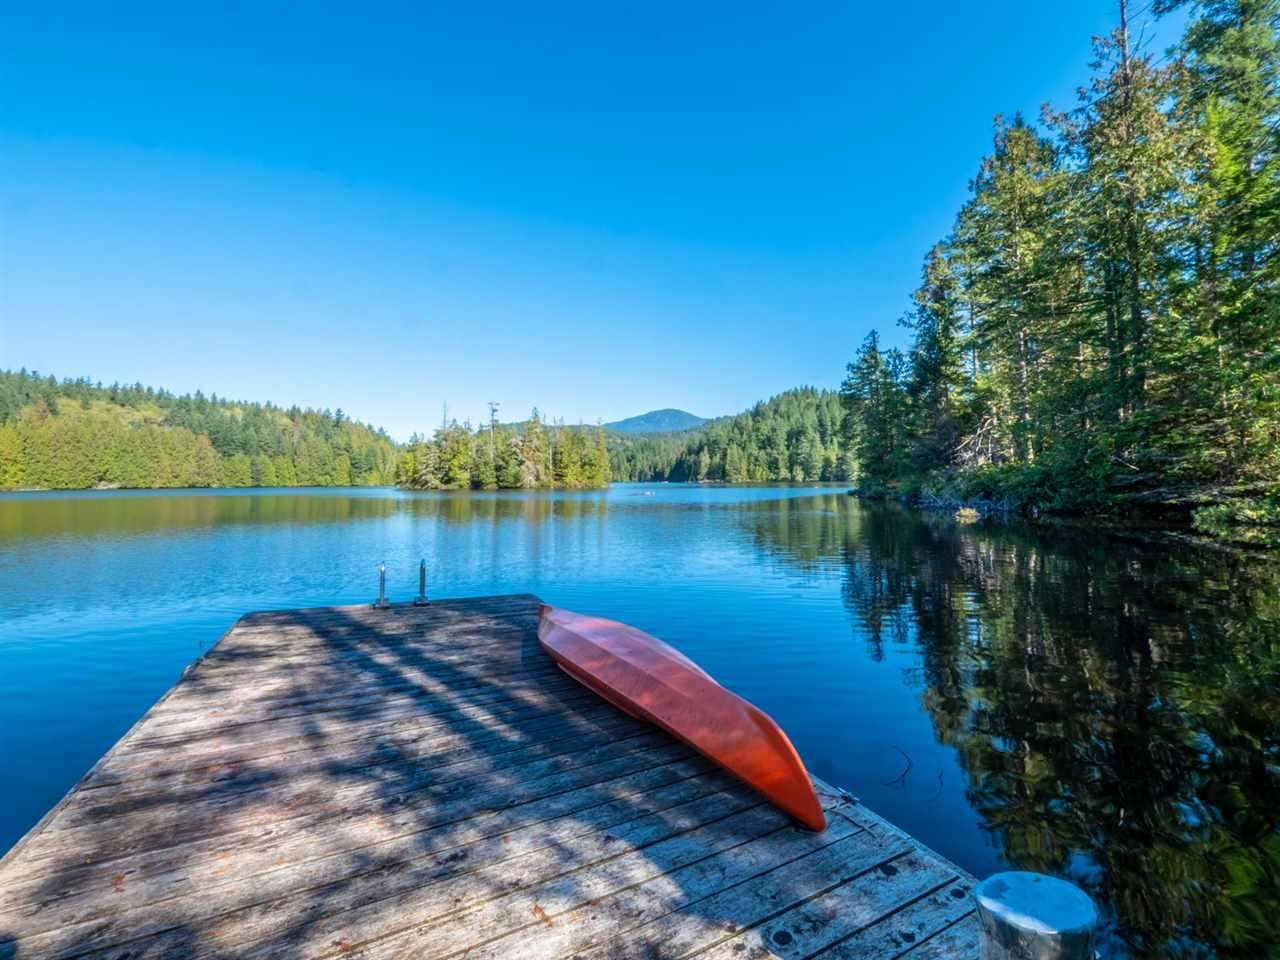 """Main Photo: 13702 CAMP BURLEY Road in Garden Bay: Pender Harbour Egmont House for sale in """"Mixal Lake"""" (Sunshine Coast)  : MLS®# R2485235"""